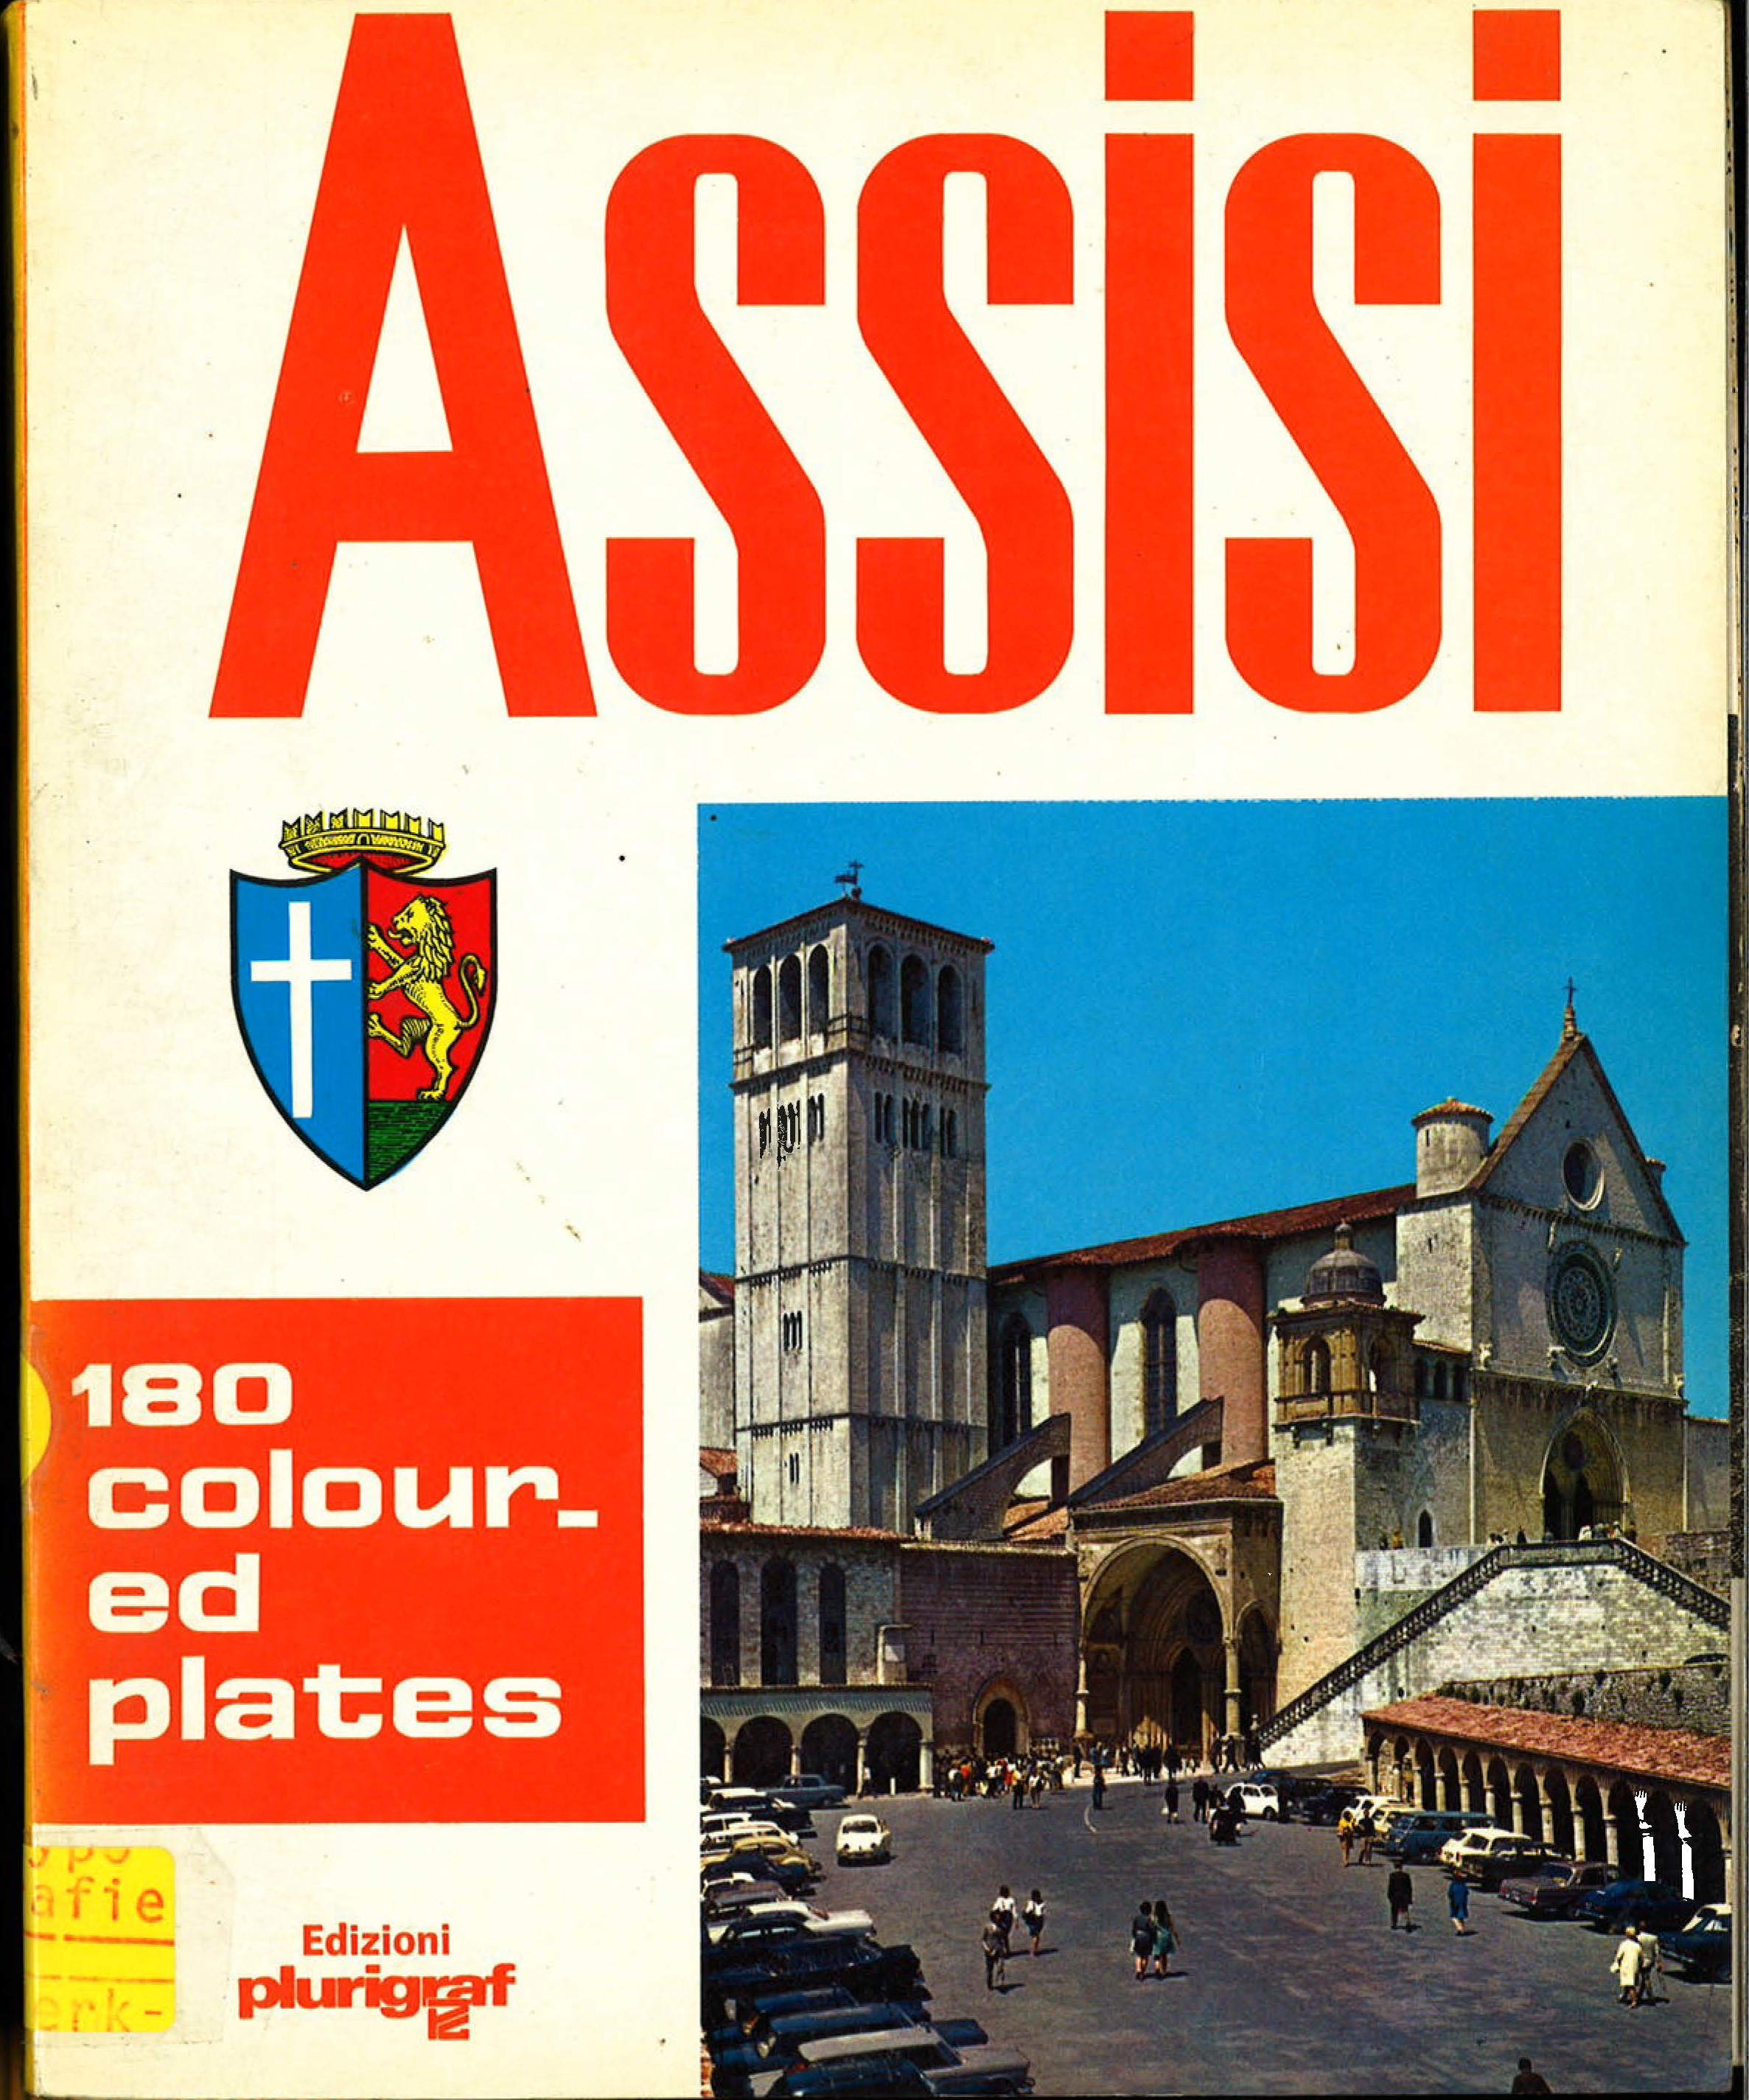 Assisi: Art and history in the Centuries